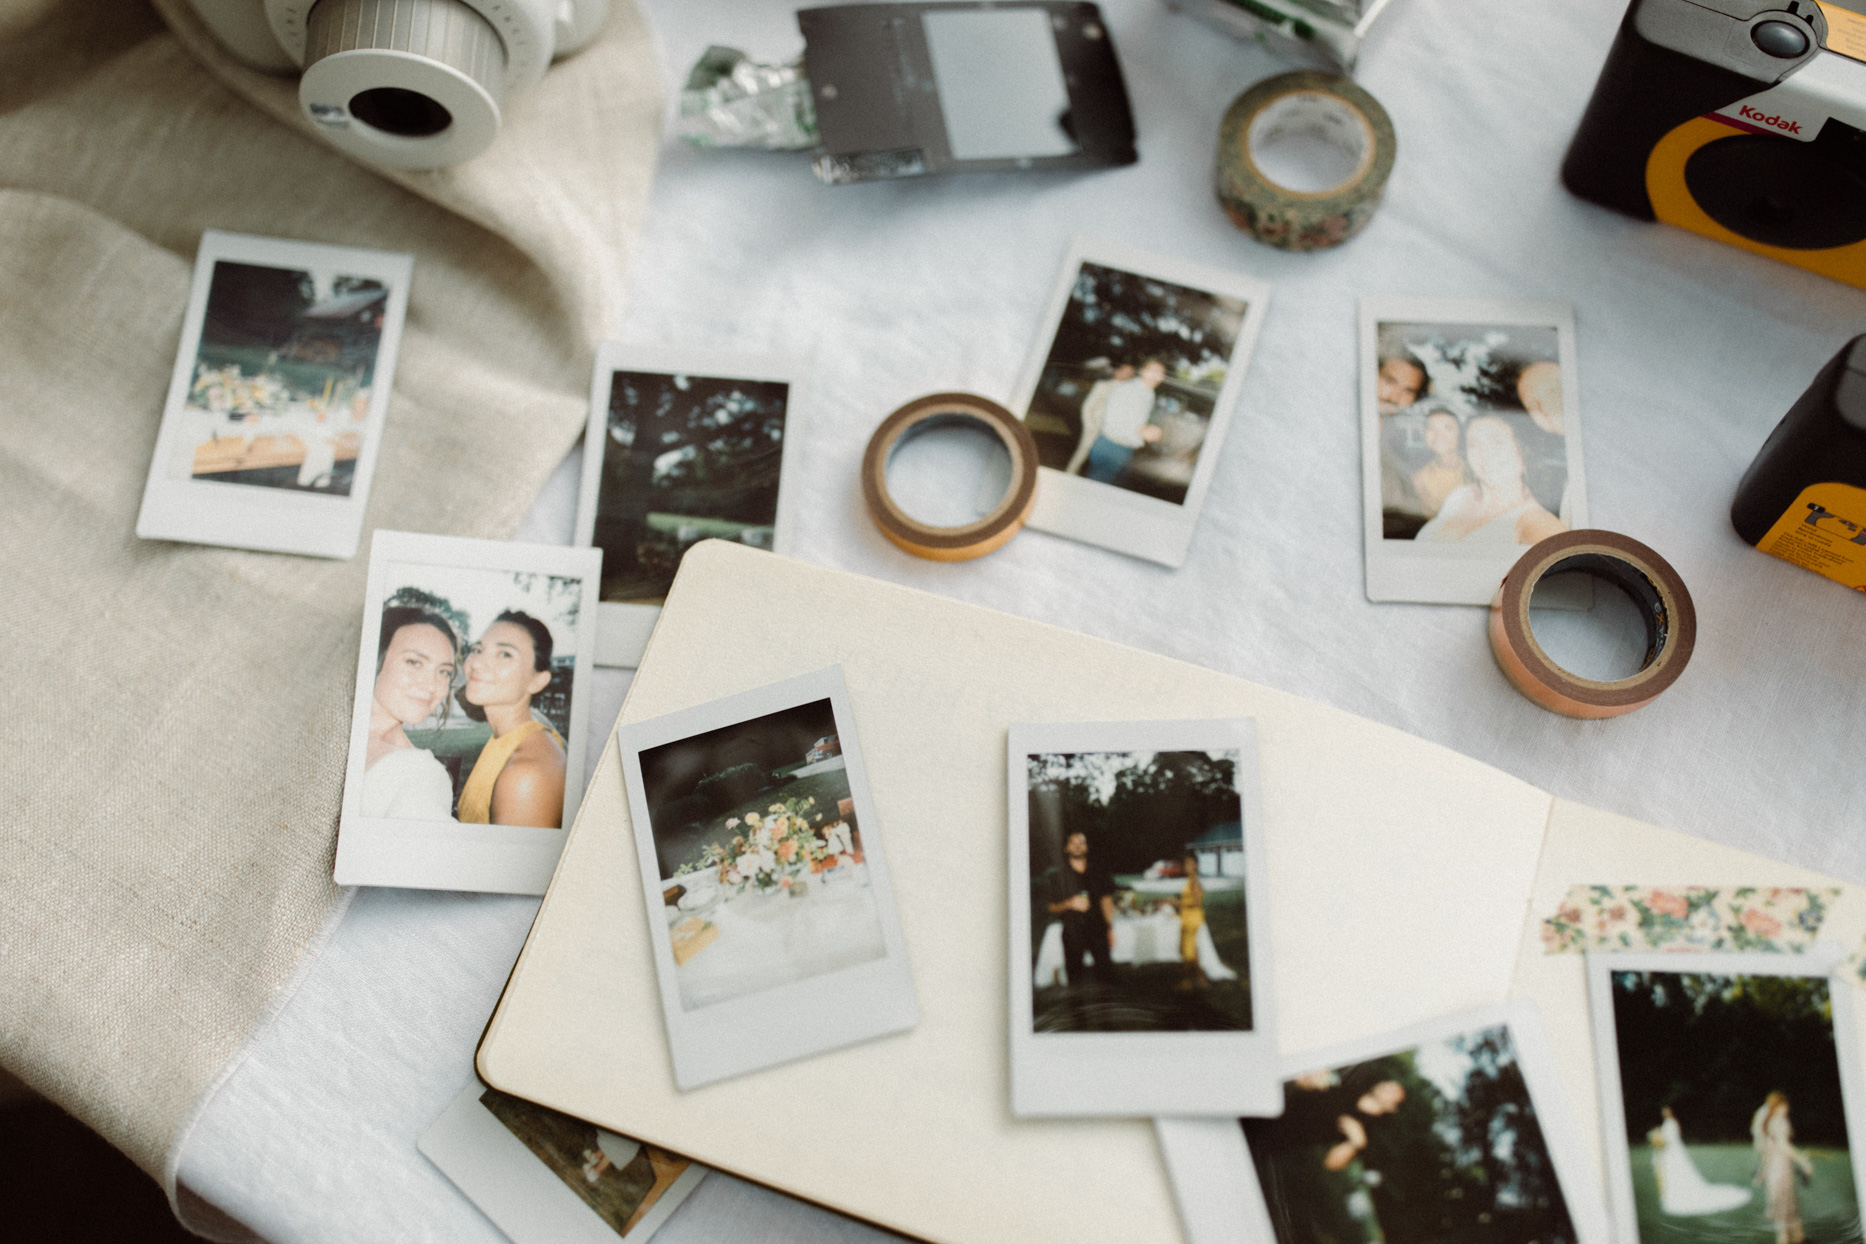 various polaroid photos laid out on table